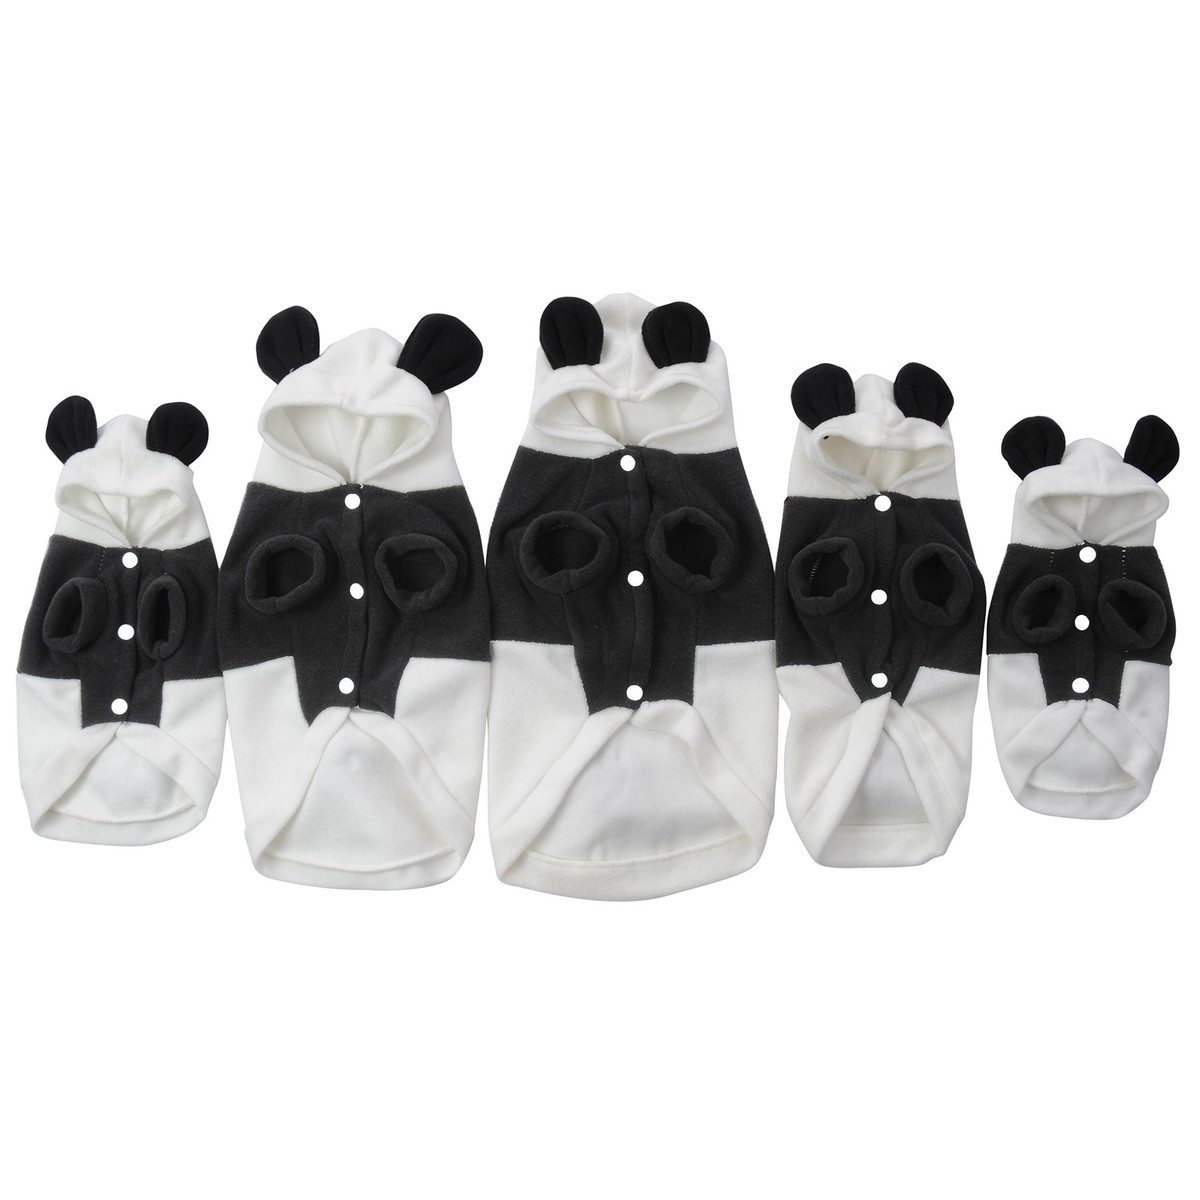 Panda Suit Hoodie Costume Pet Dog Clothes Cute Fleece Clothes Soft Warm Coat Jacket Cosplay Outwear Apparel For Dogs Cats Pet